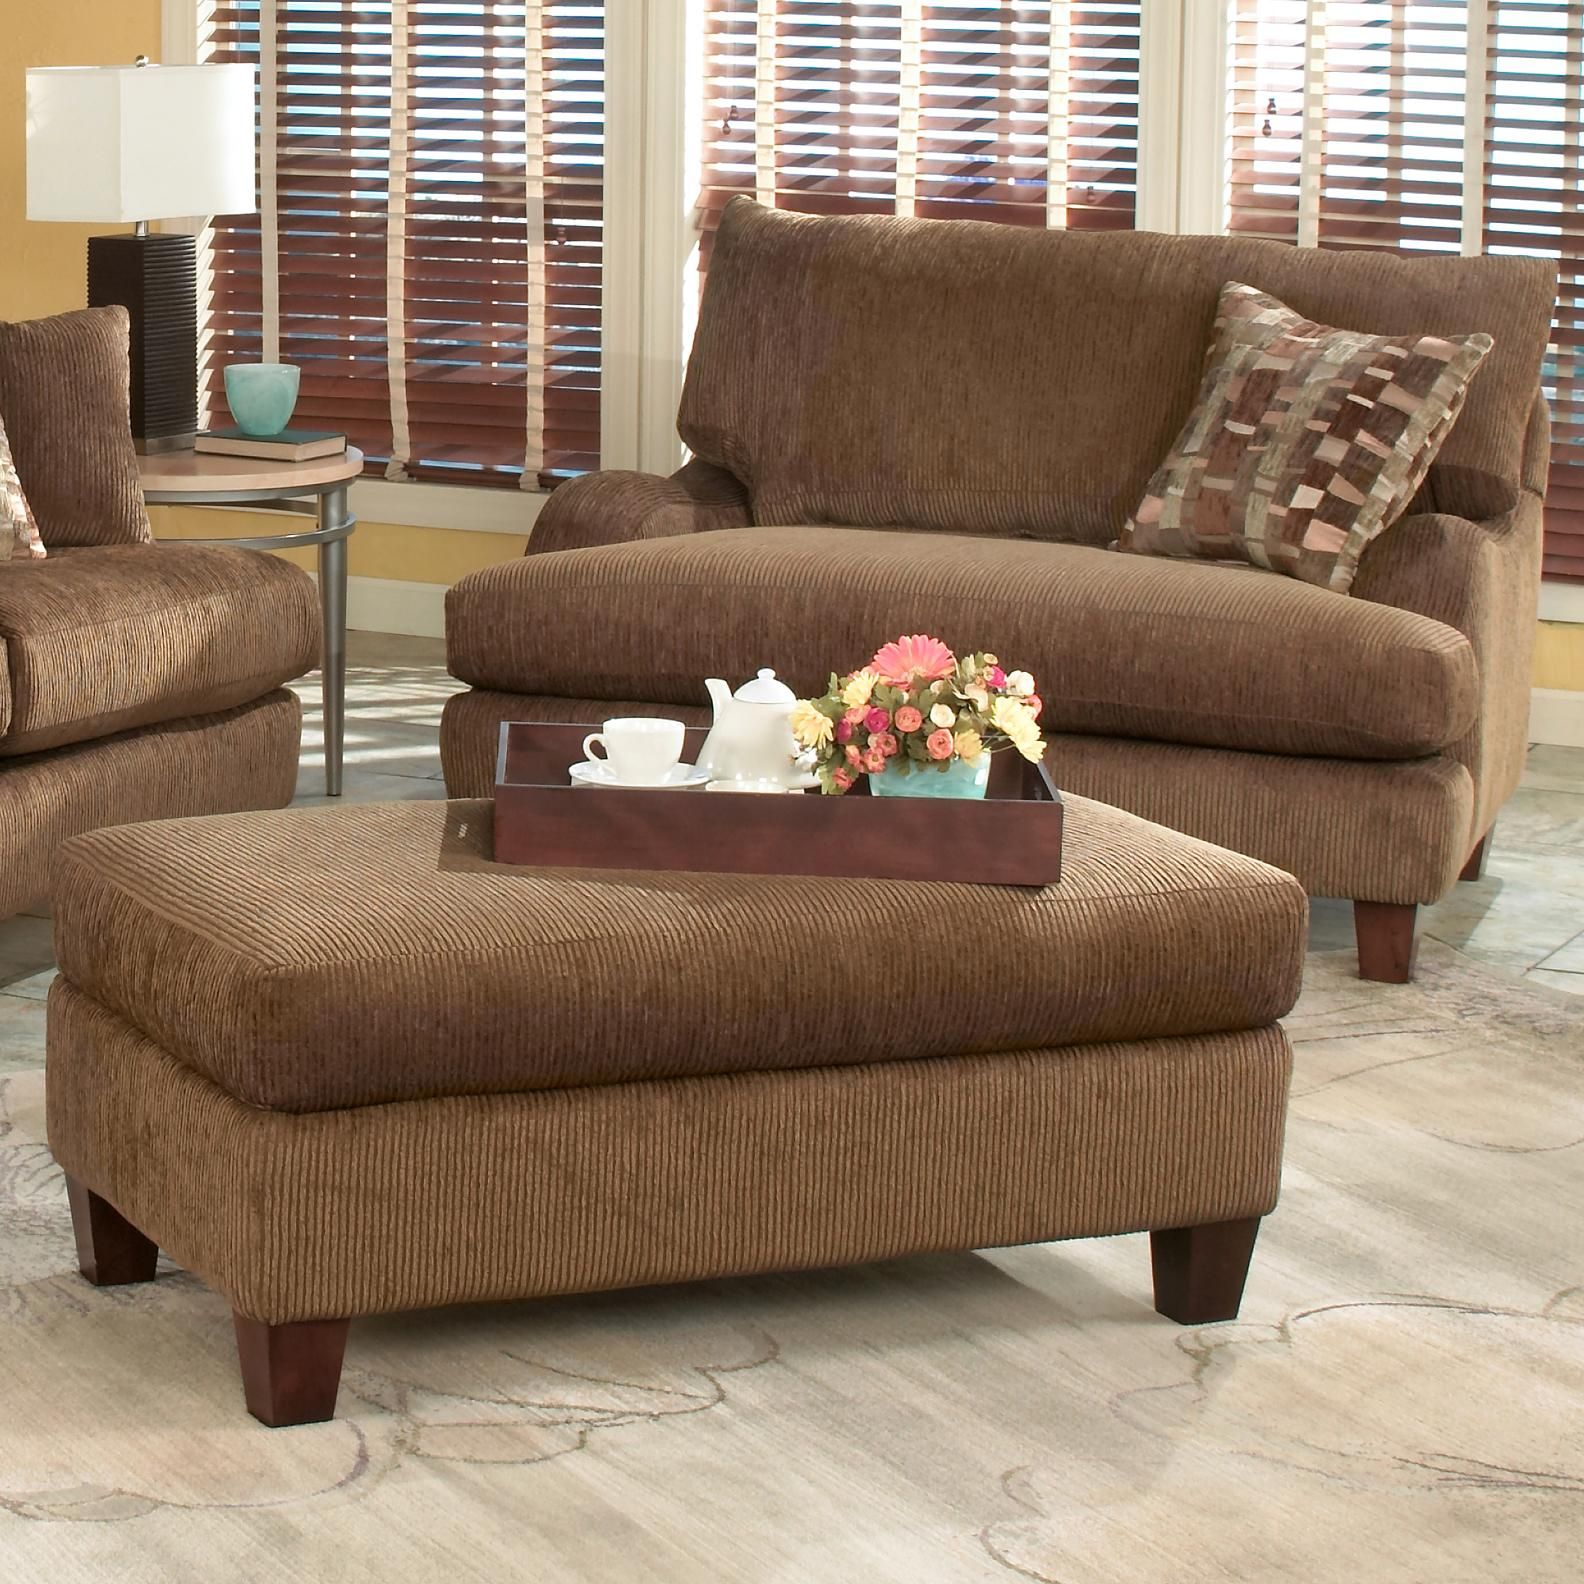 living room chair and ottoman set 1750 wide snuggler chair and ottoman set for 25467